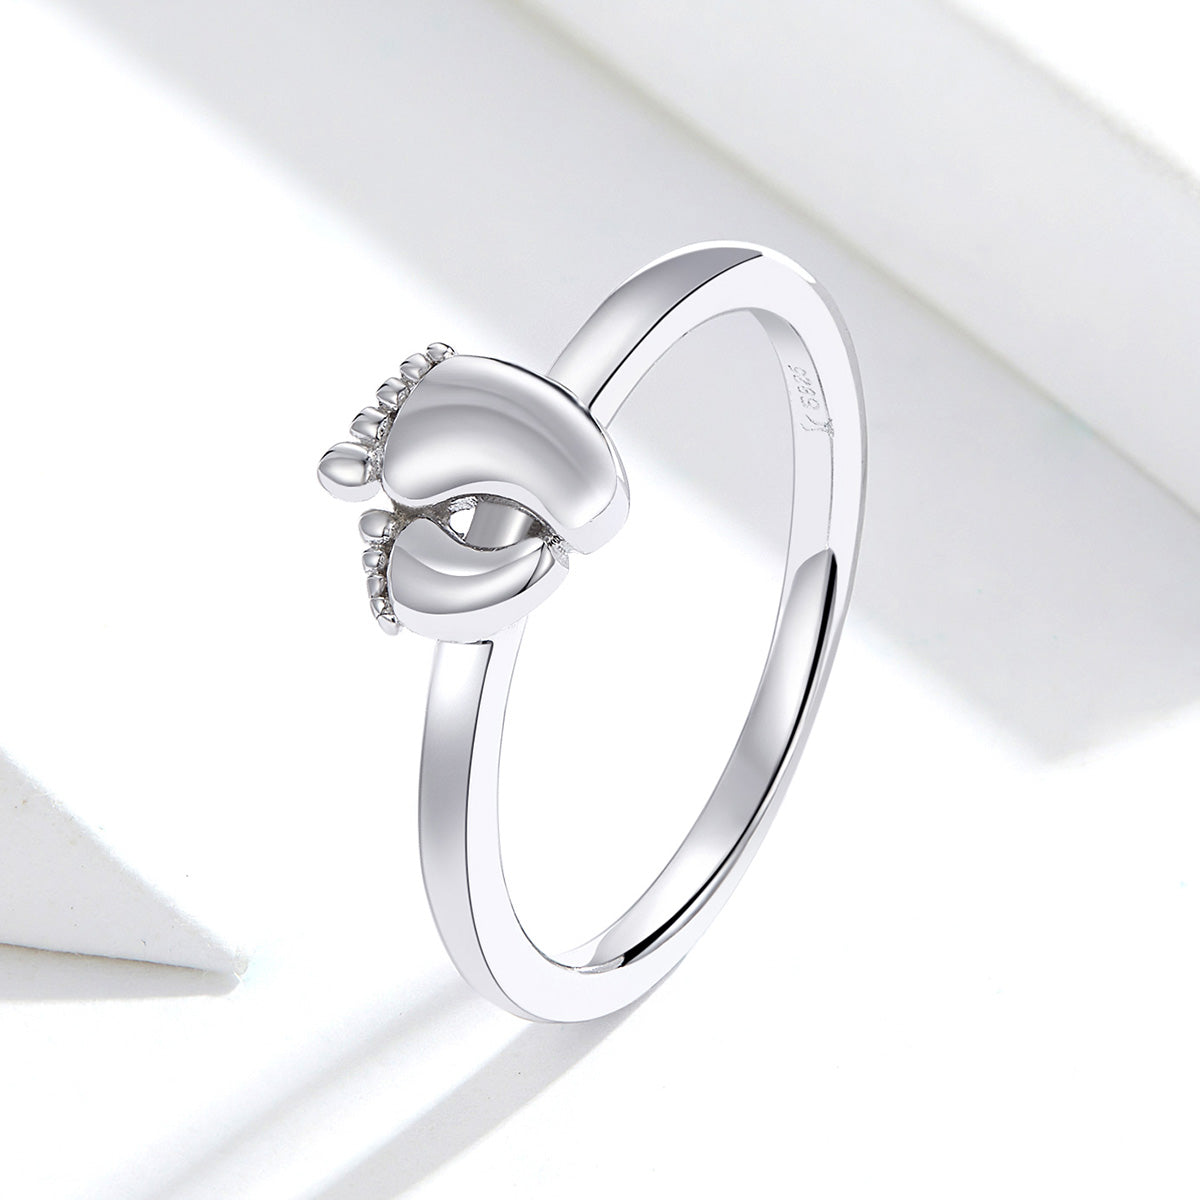 S925 sterling silver foot ring white gold plated ring